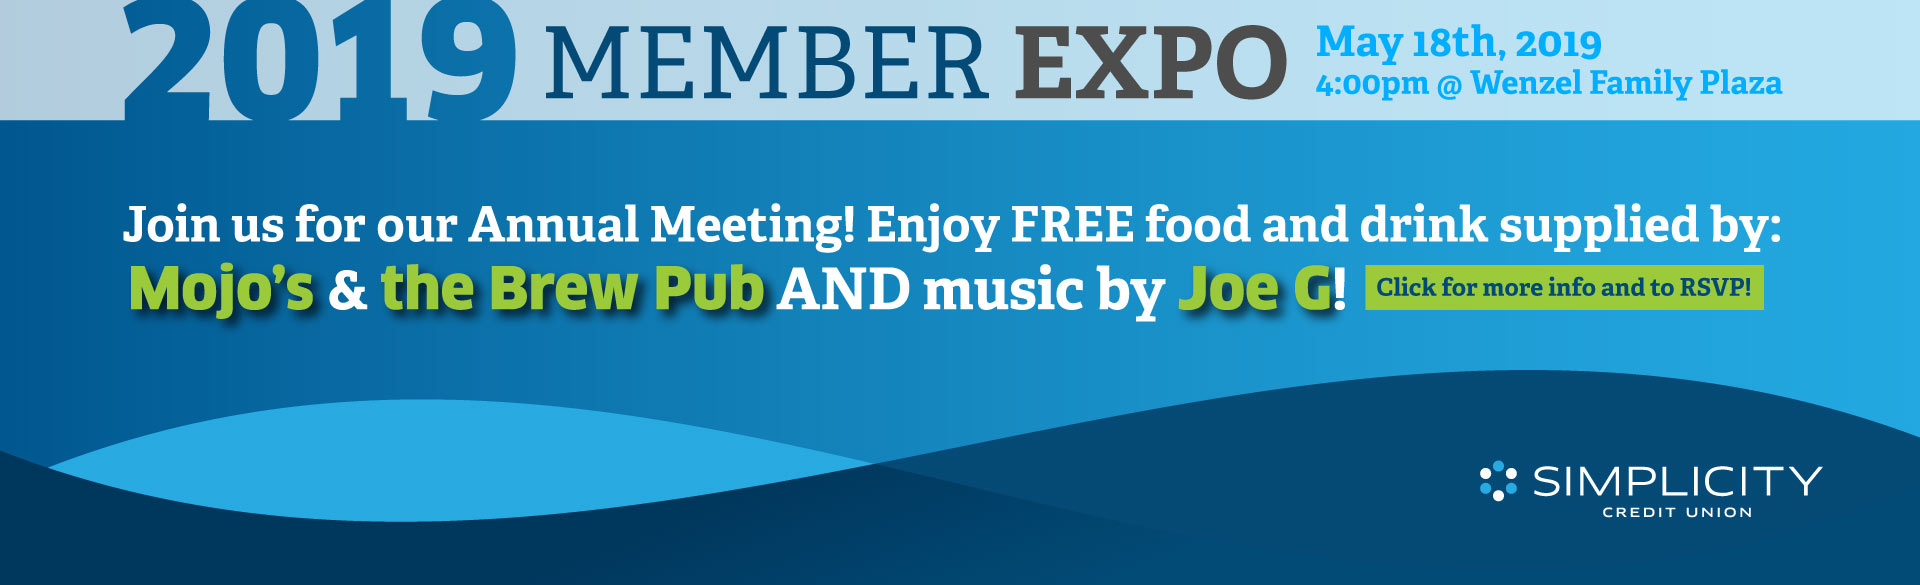 Join us for our Annual Meeting! Enjoy FREE food supplied by Mojo's & the Brew Pub AND music by Joe G!